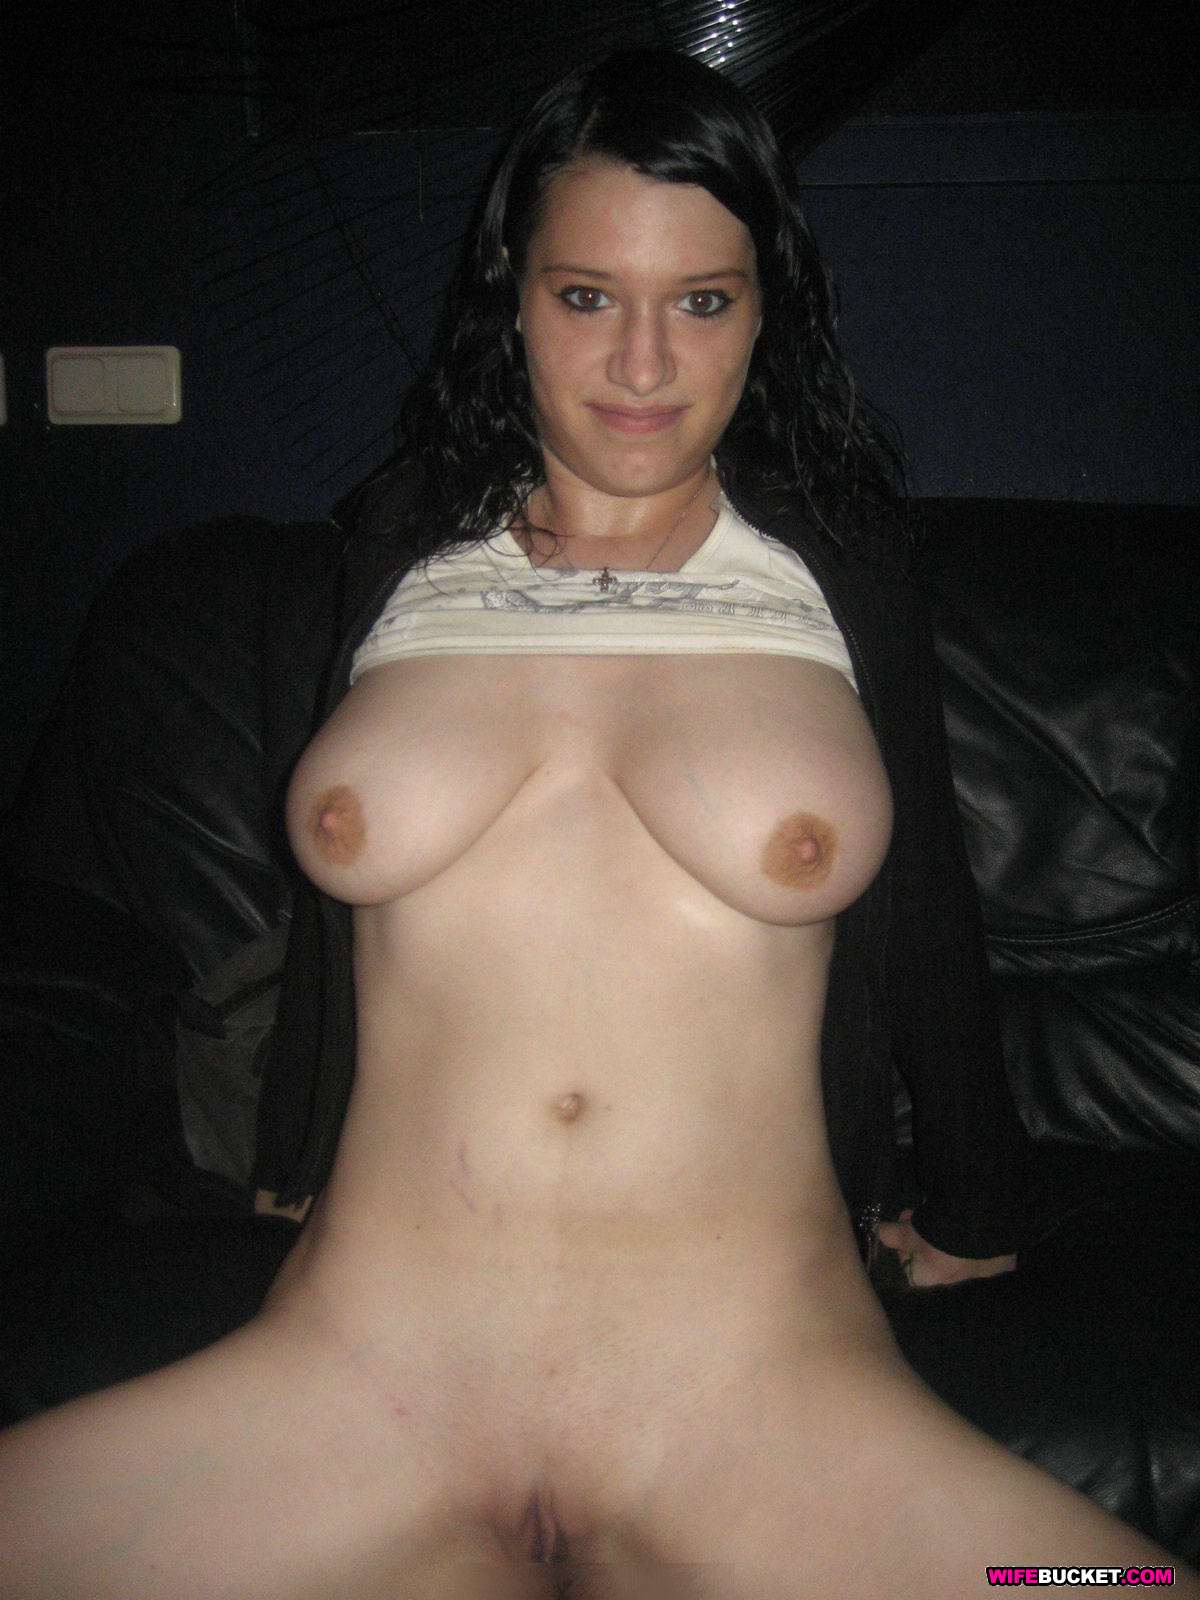 Hot naked young emo girl